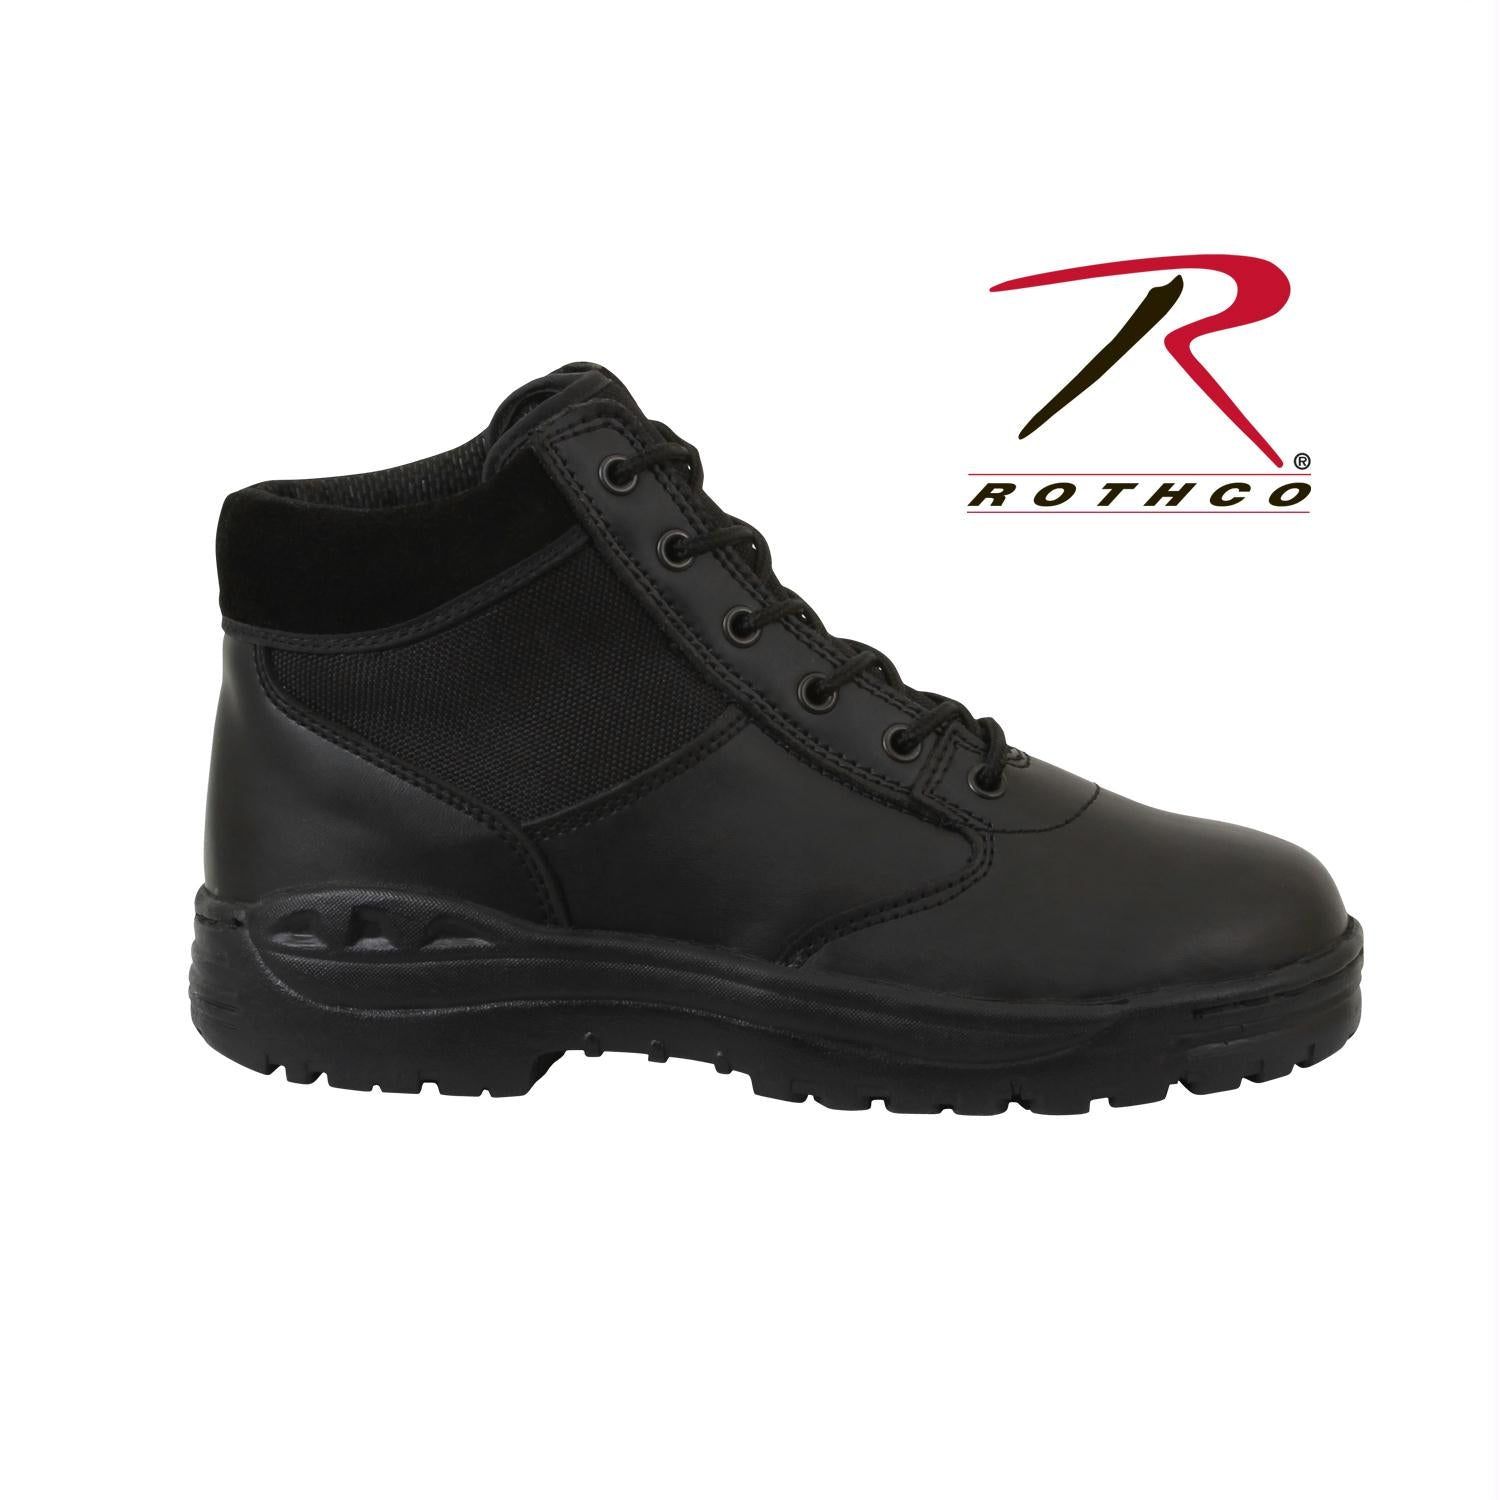 Rothco Forced Entry Security Boot / 6'' - 7.5